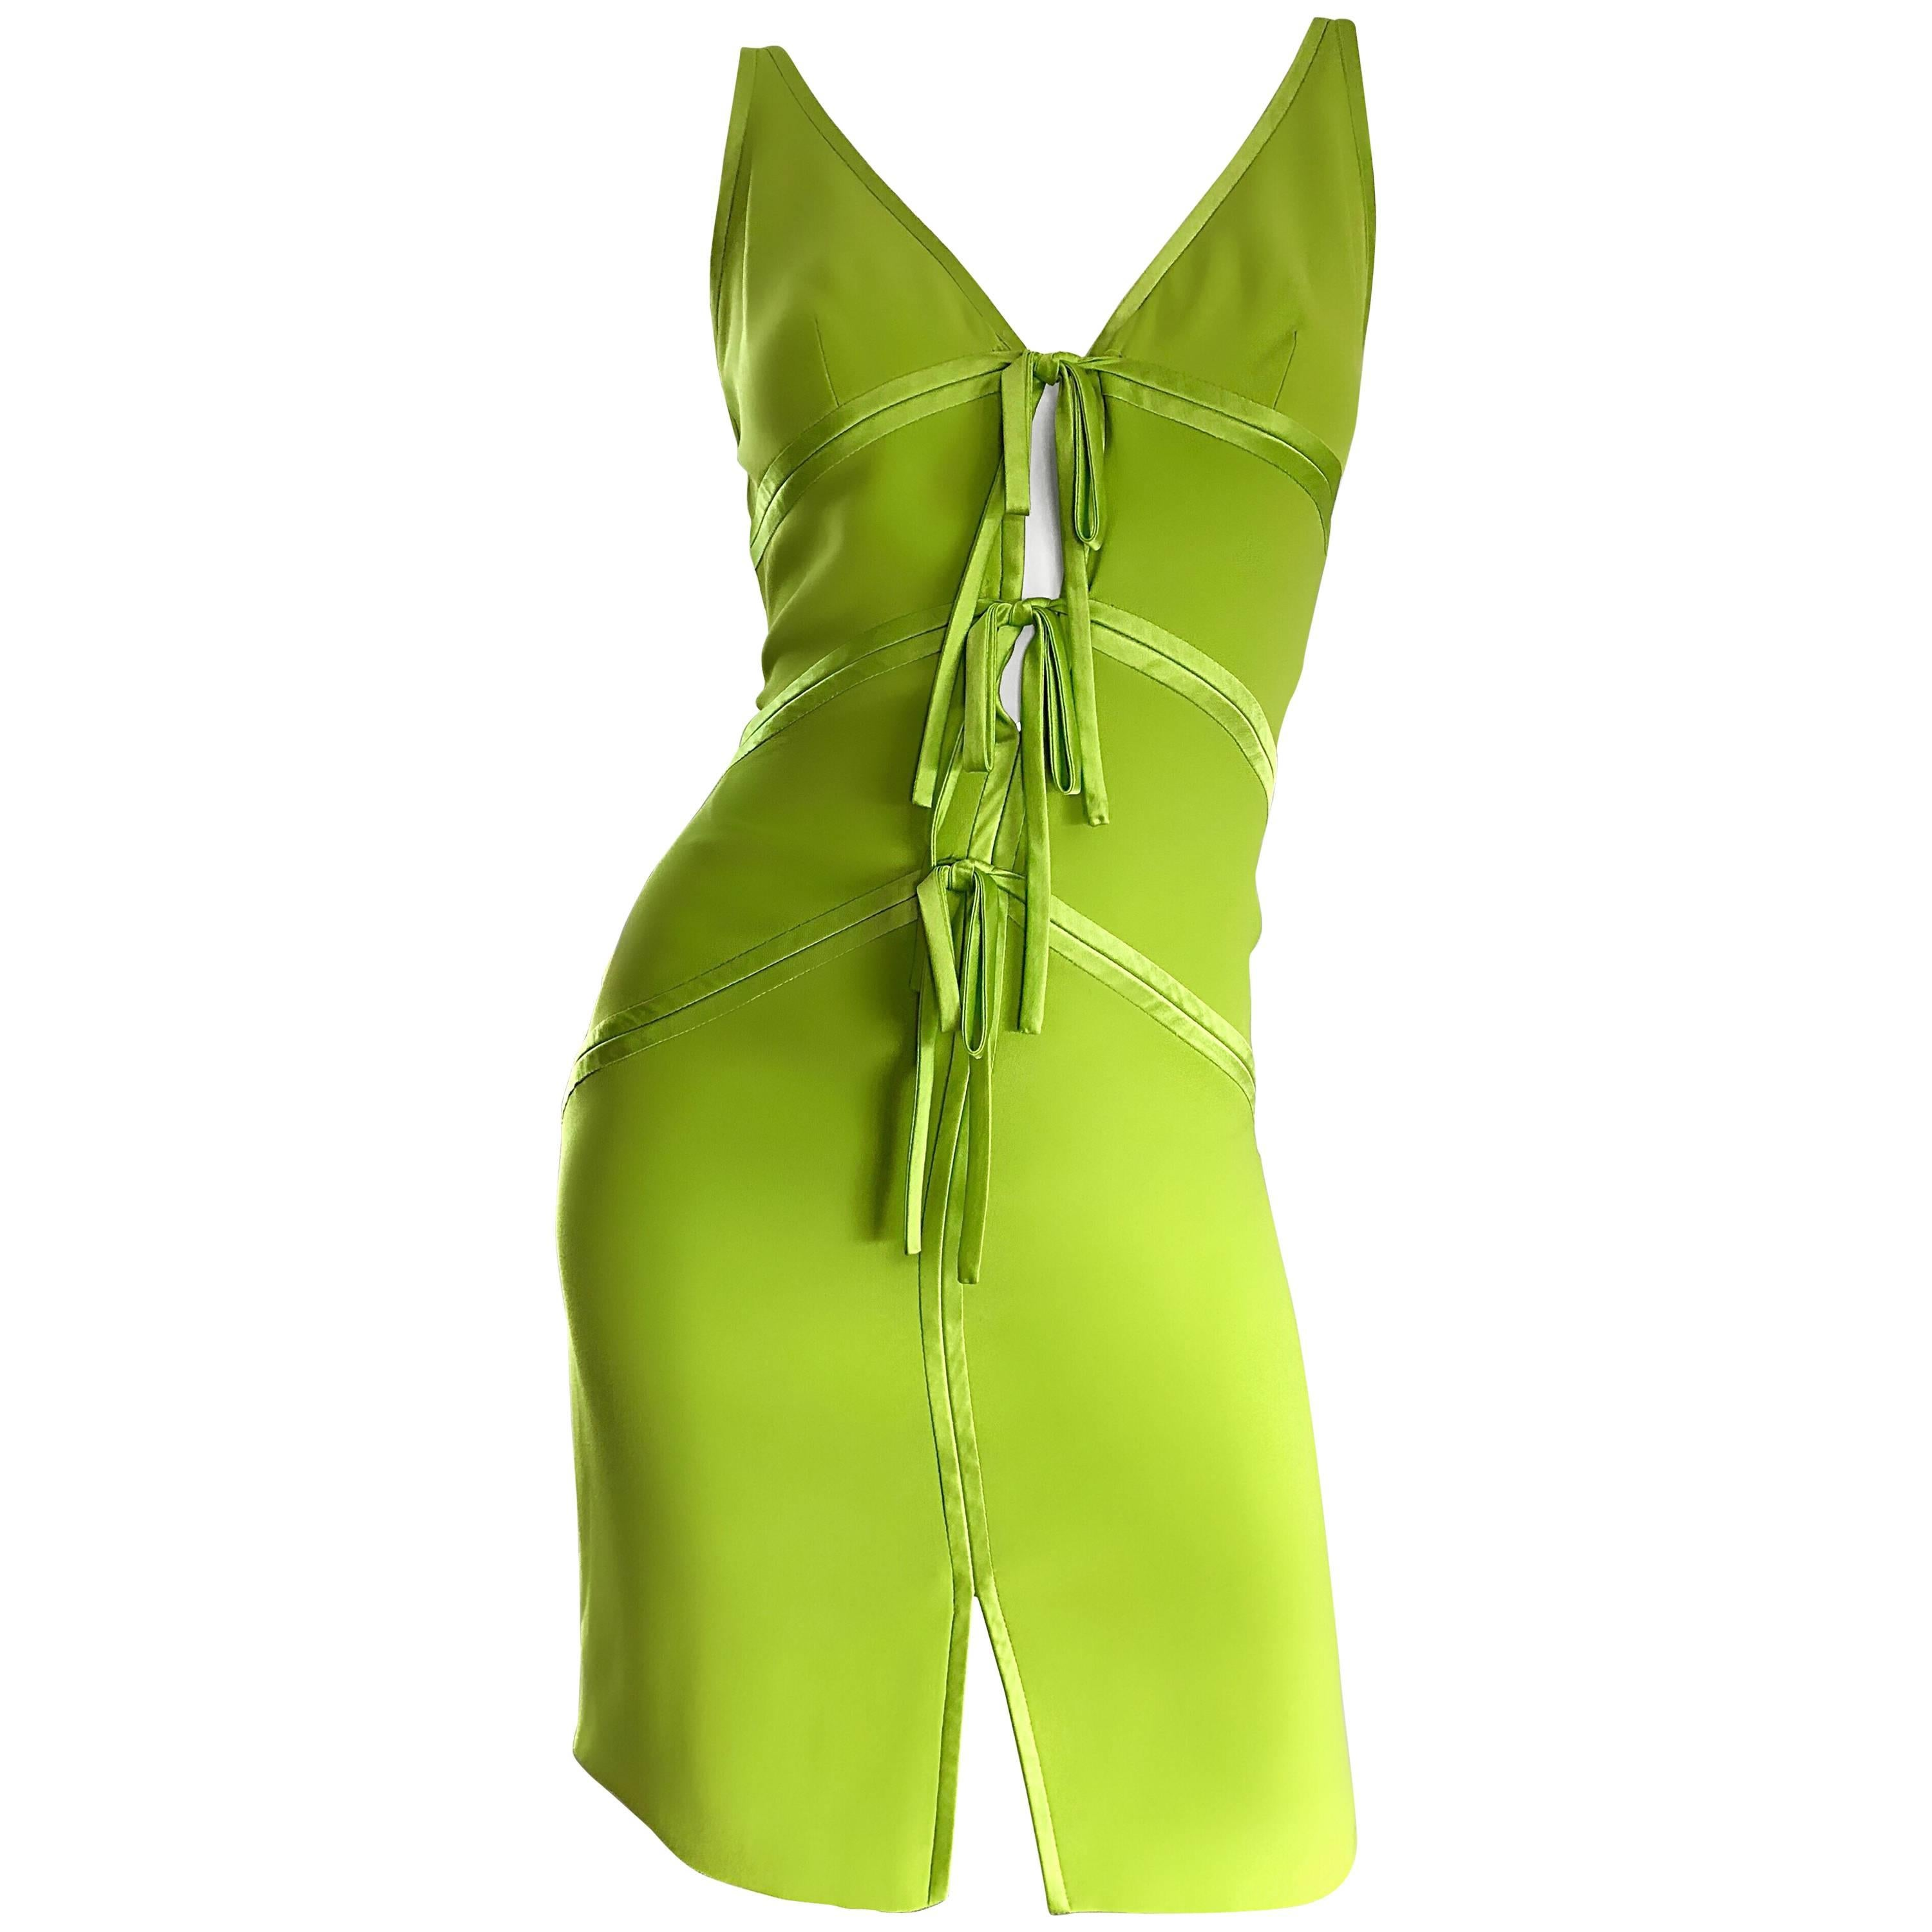 Vintage Valentino Lime Green 1990s Cut - Out Bodycon Sexy Size 4 Silk 90s Dress